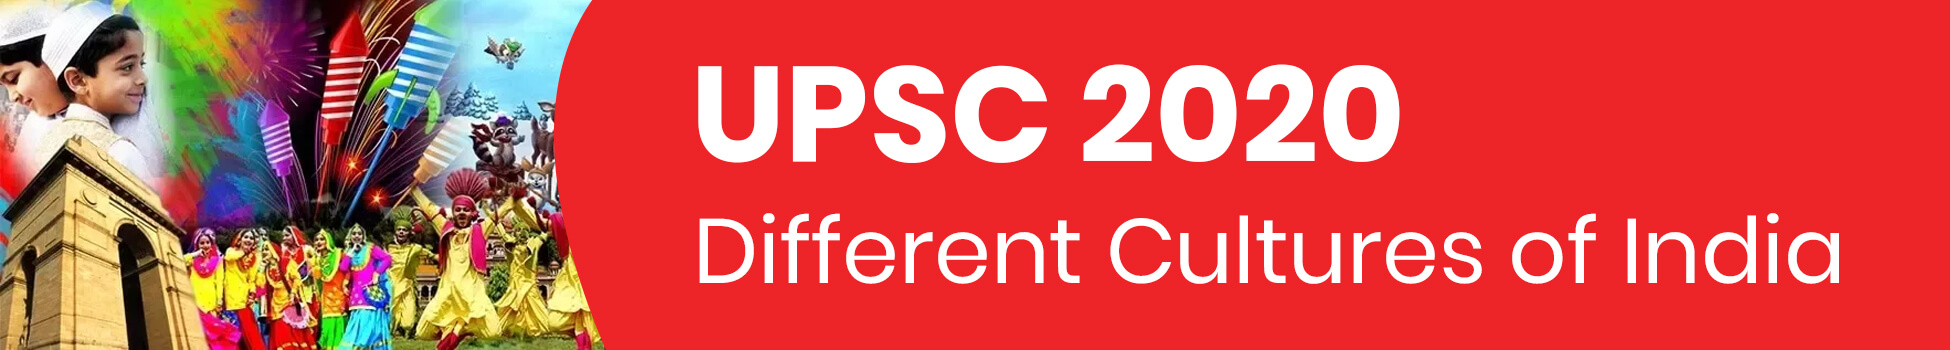 Different Cultures of India - UPSC 2020